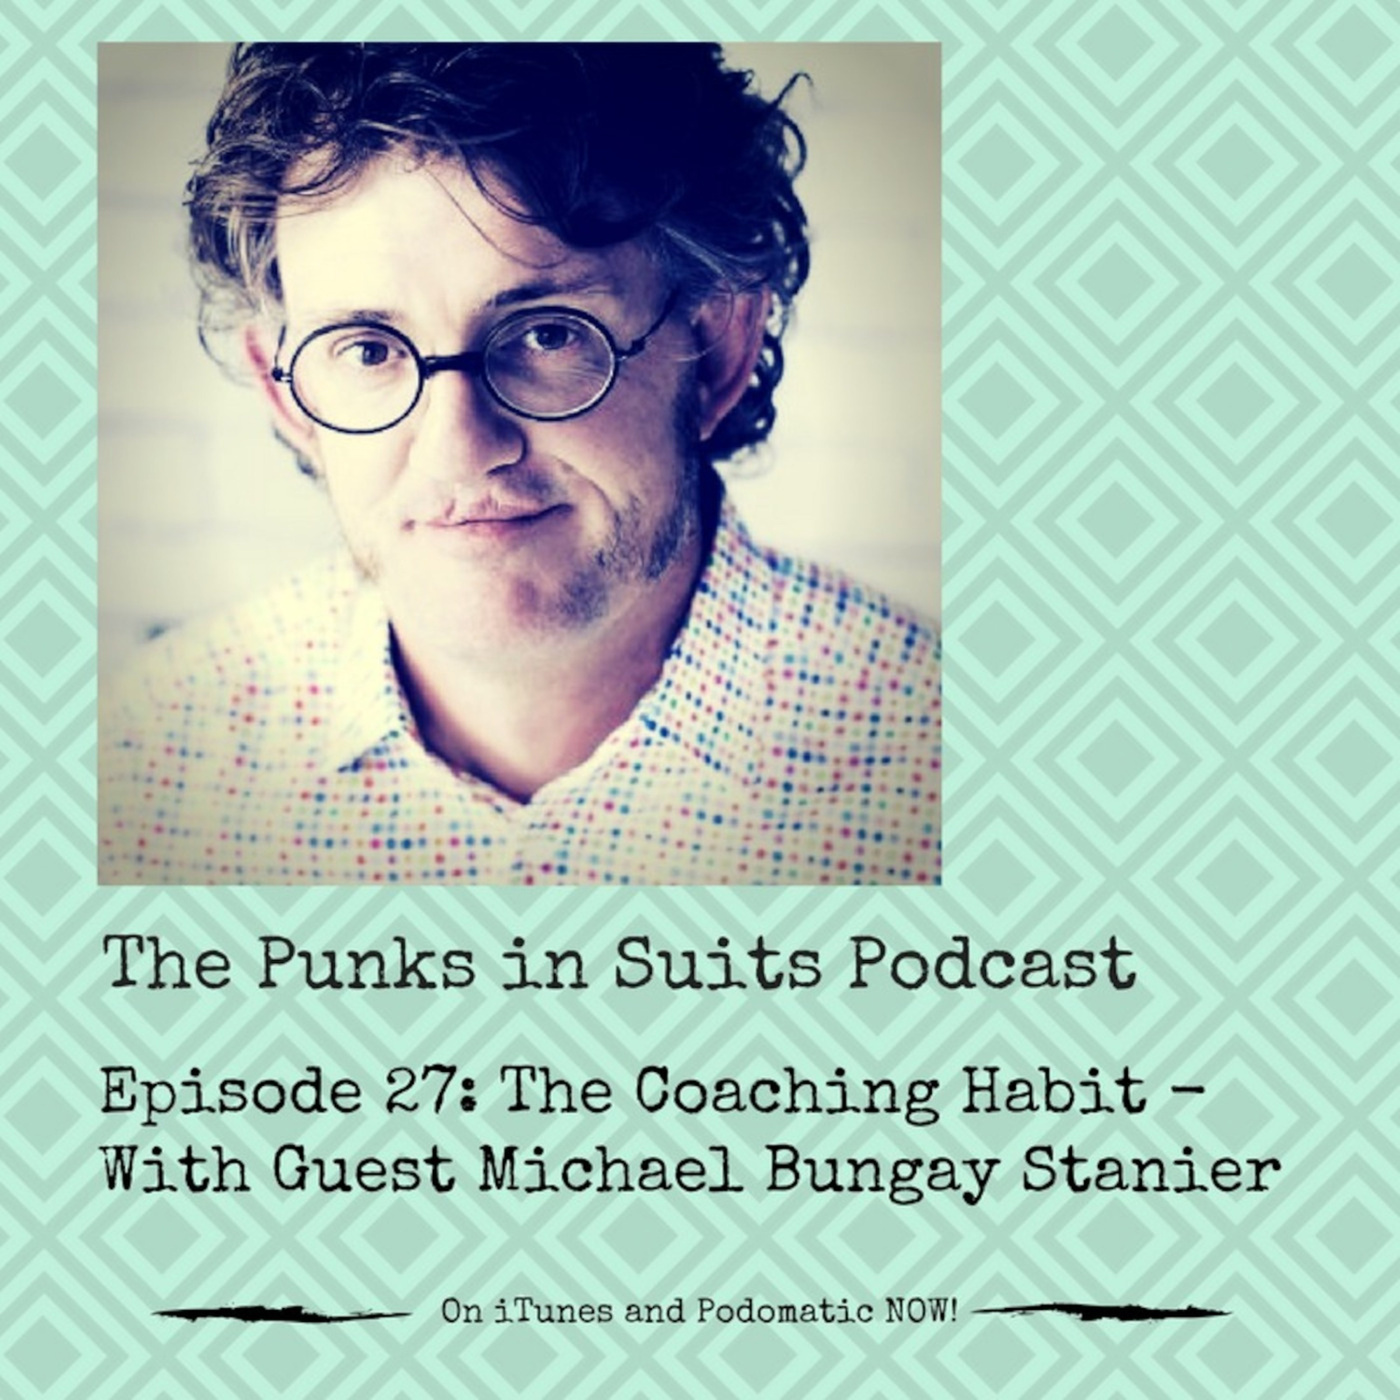 Episode 27: The Coaching Habit - with guest Michael Bungay Stanier